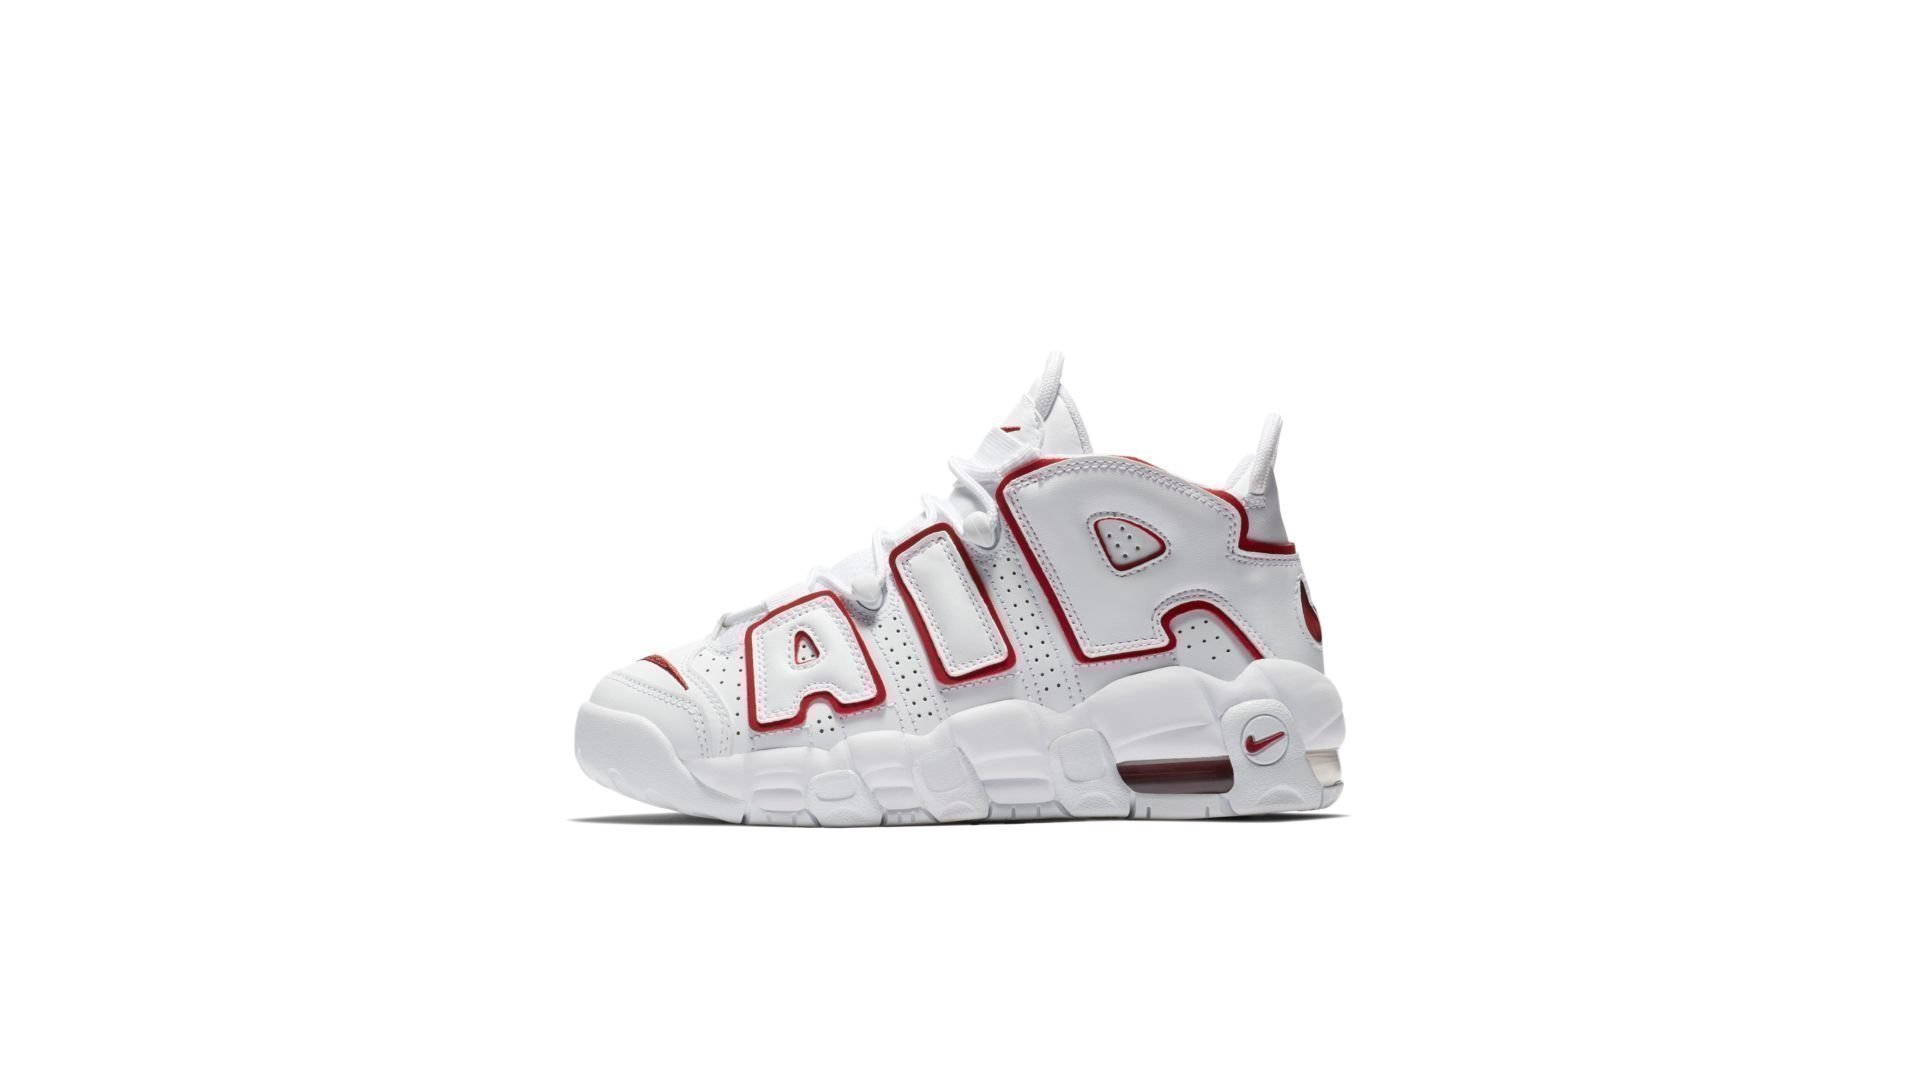 Nike Air More Uptempo White Varsity Red Outline (GS) (415082-108)